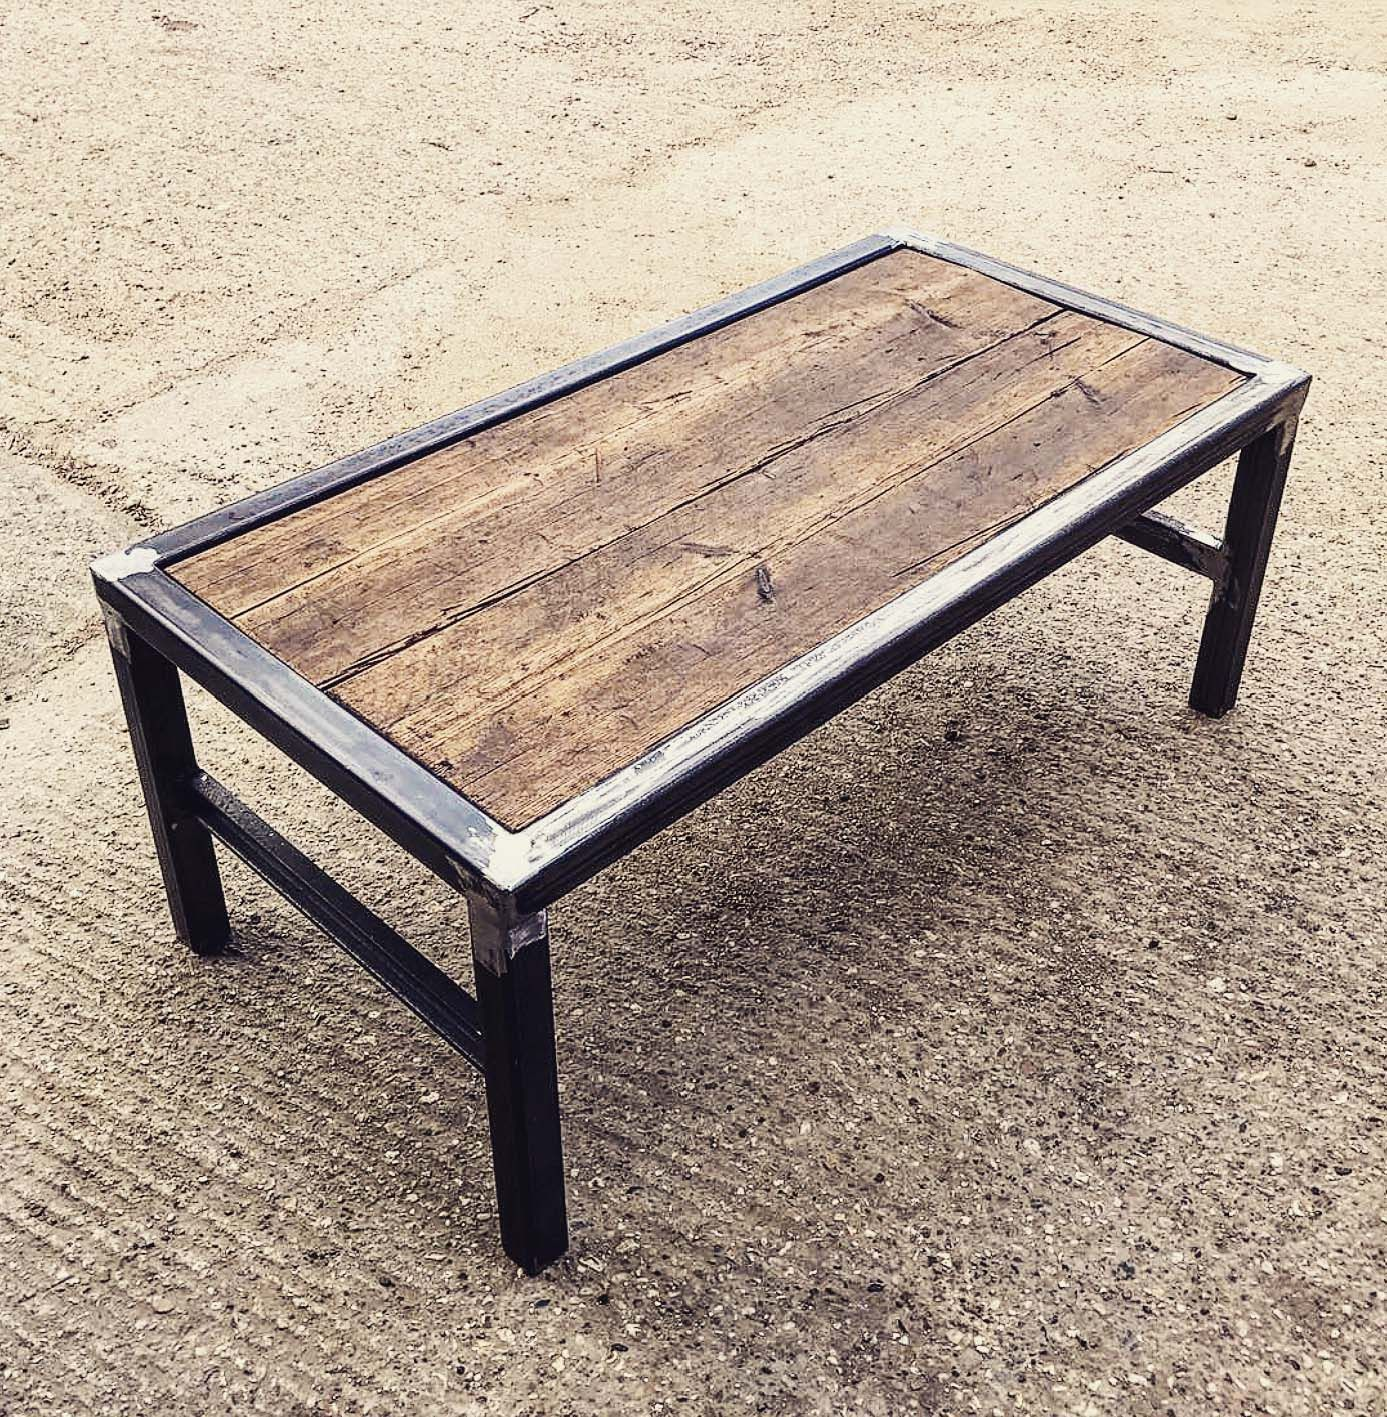 Steel Frame Coffee Table With Scaffold Board Top Insert Welded Furniture Coffee Table Welding Table